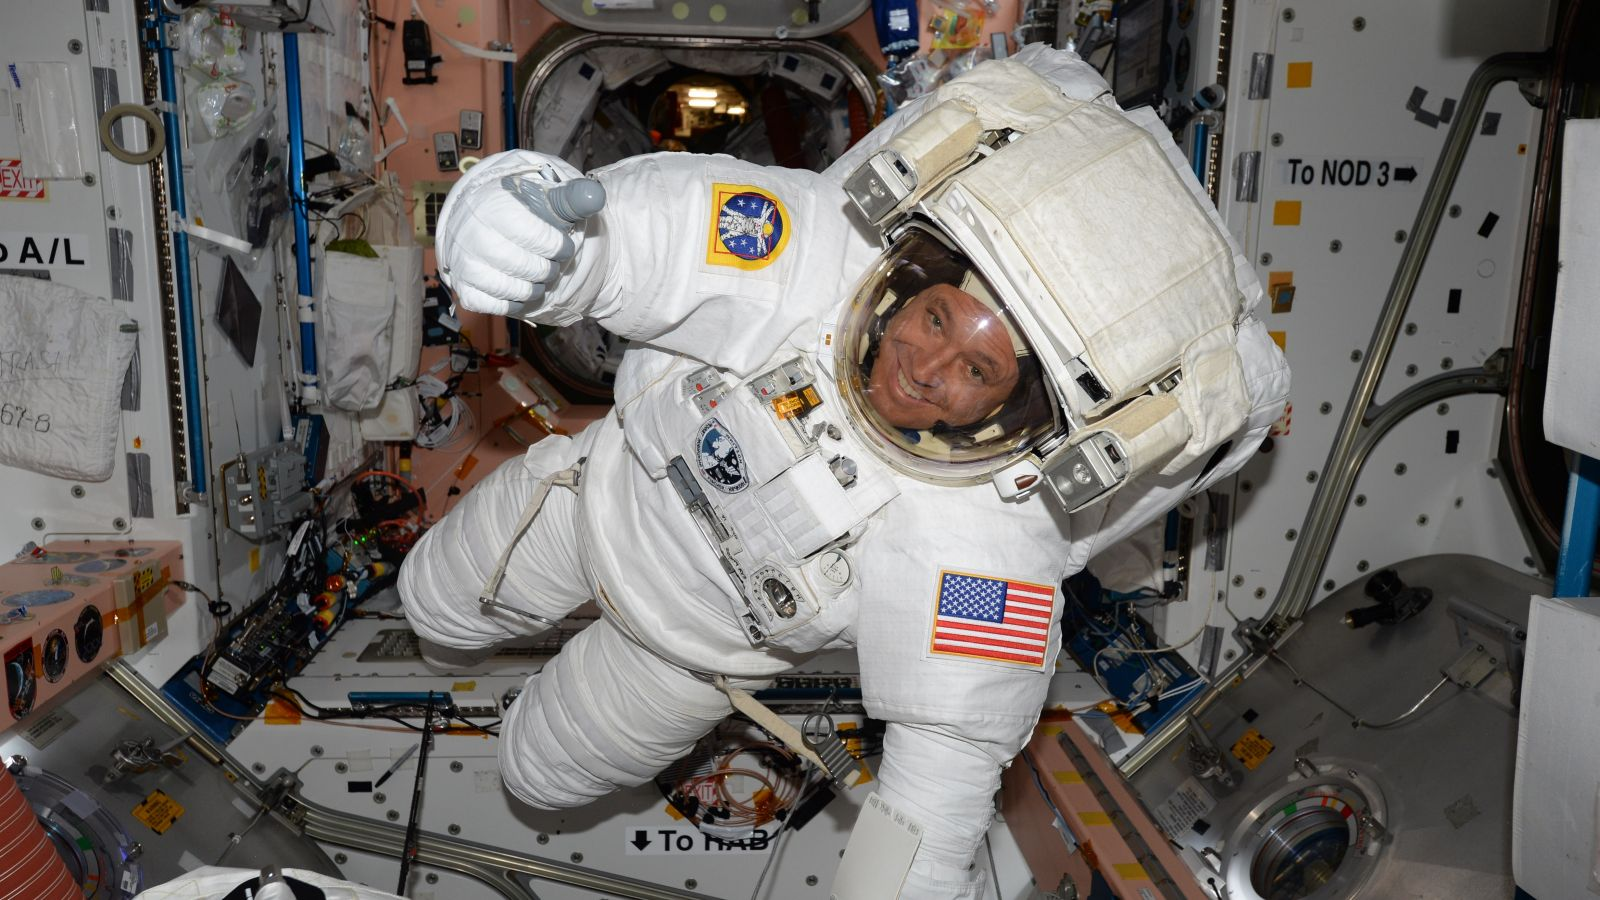 Equipment water leak stalls spacewalk by US astronauts